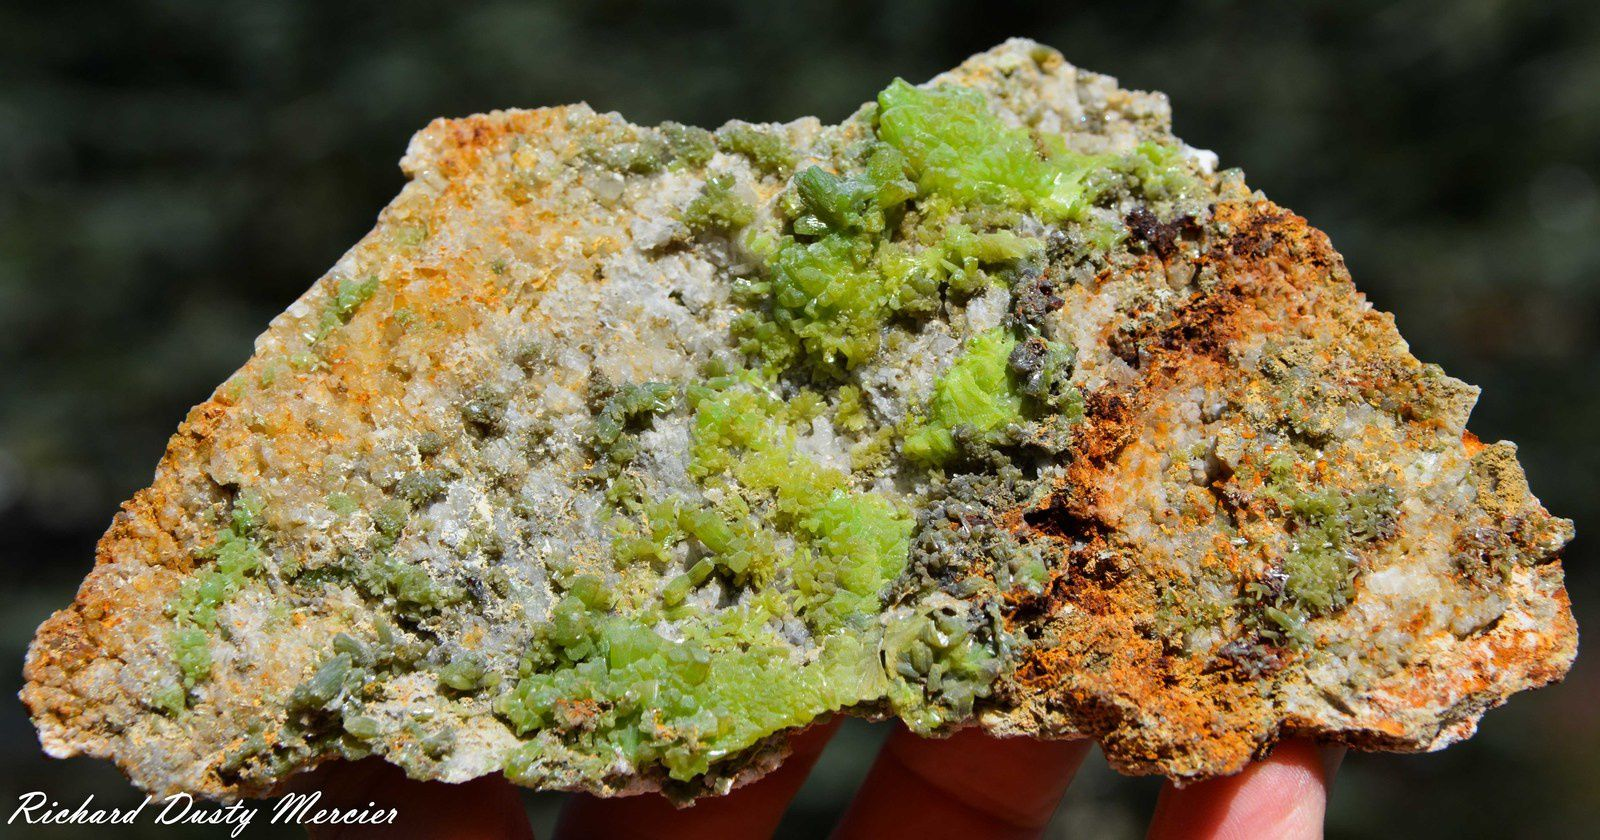 Pyromorphite from Daoping Mine, Gongcheng County, Guangxi Zhuang Autonomous Region, China